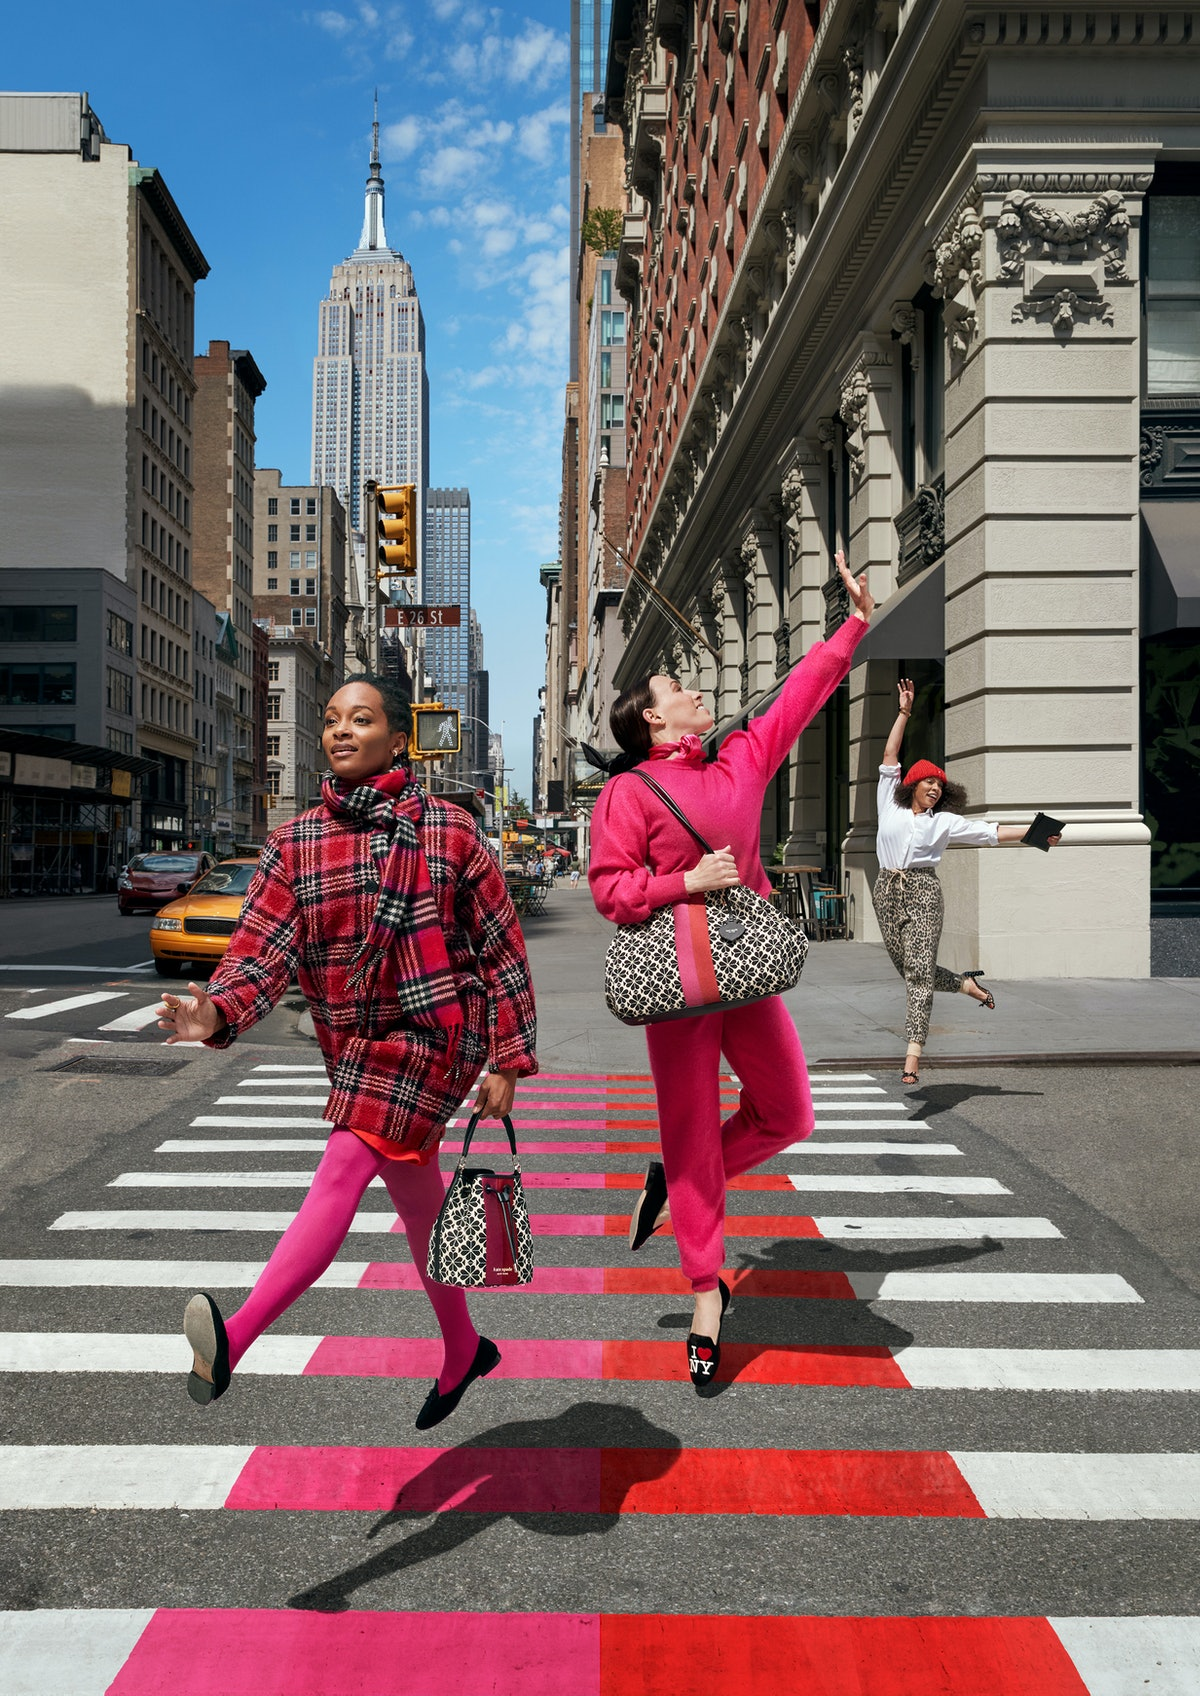 Kate Spade New York Fall/Winter 2021 Campaign.